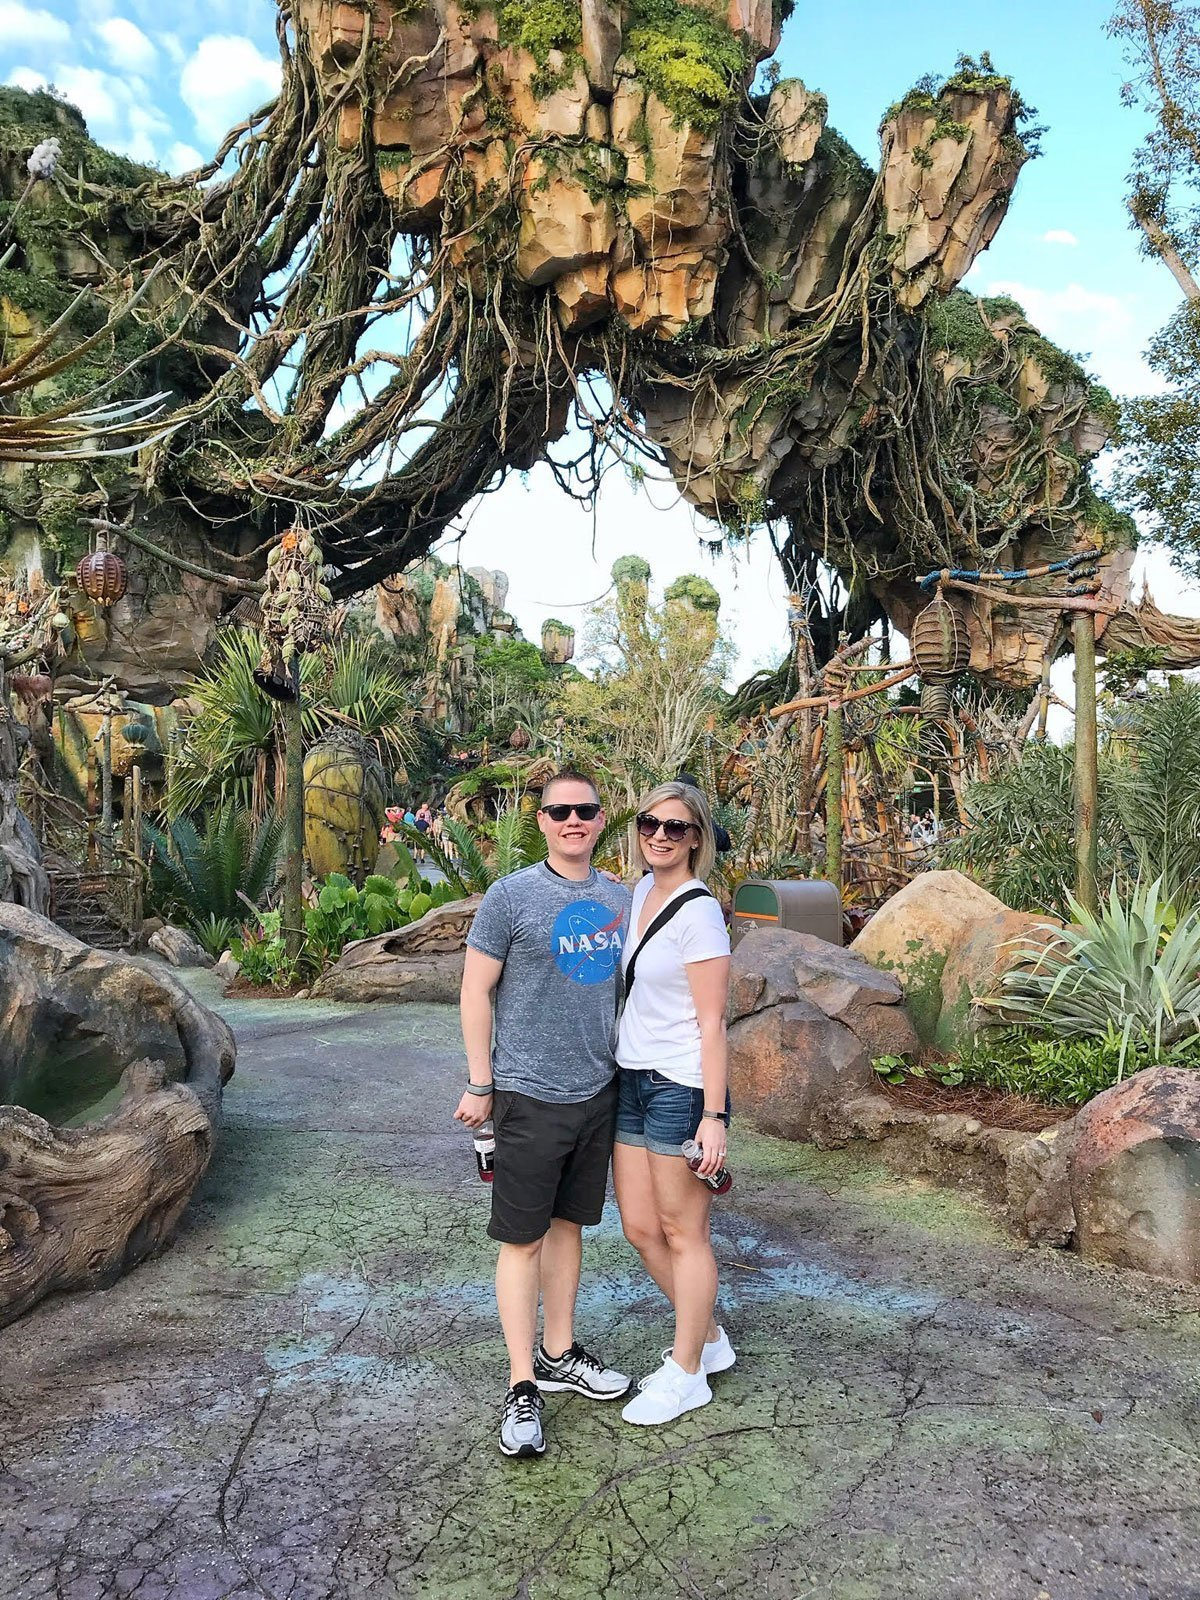 Disney's Animal Kingdom Pandora World of Avatar